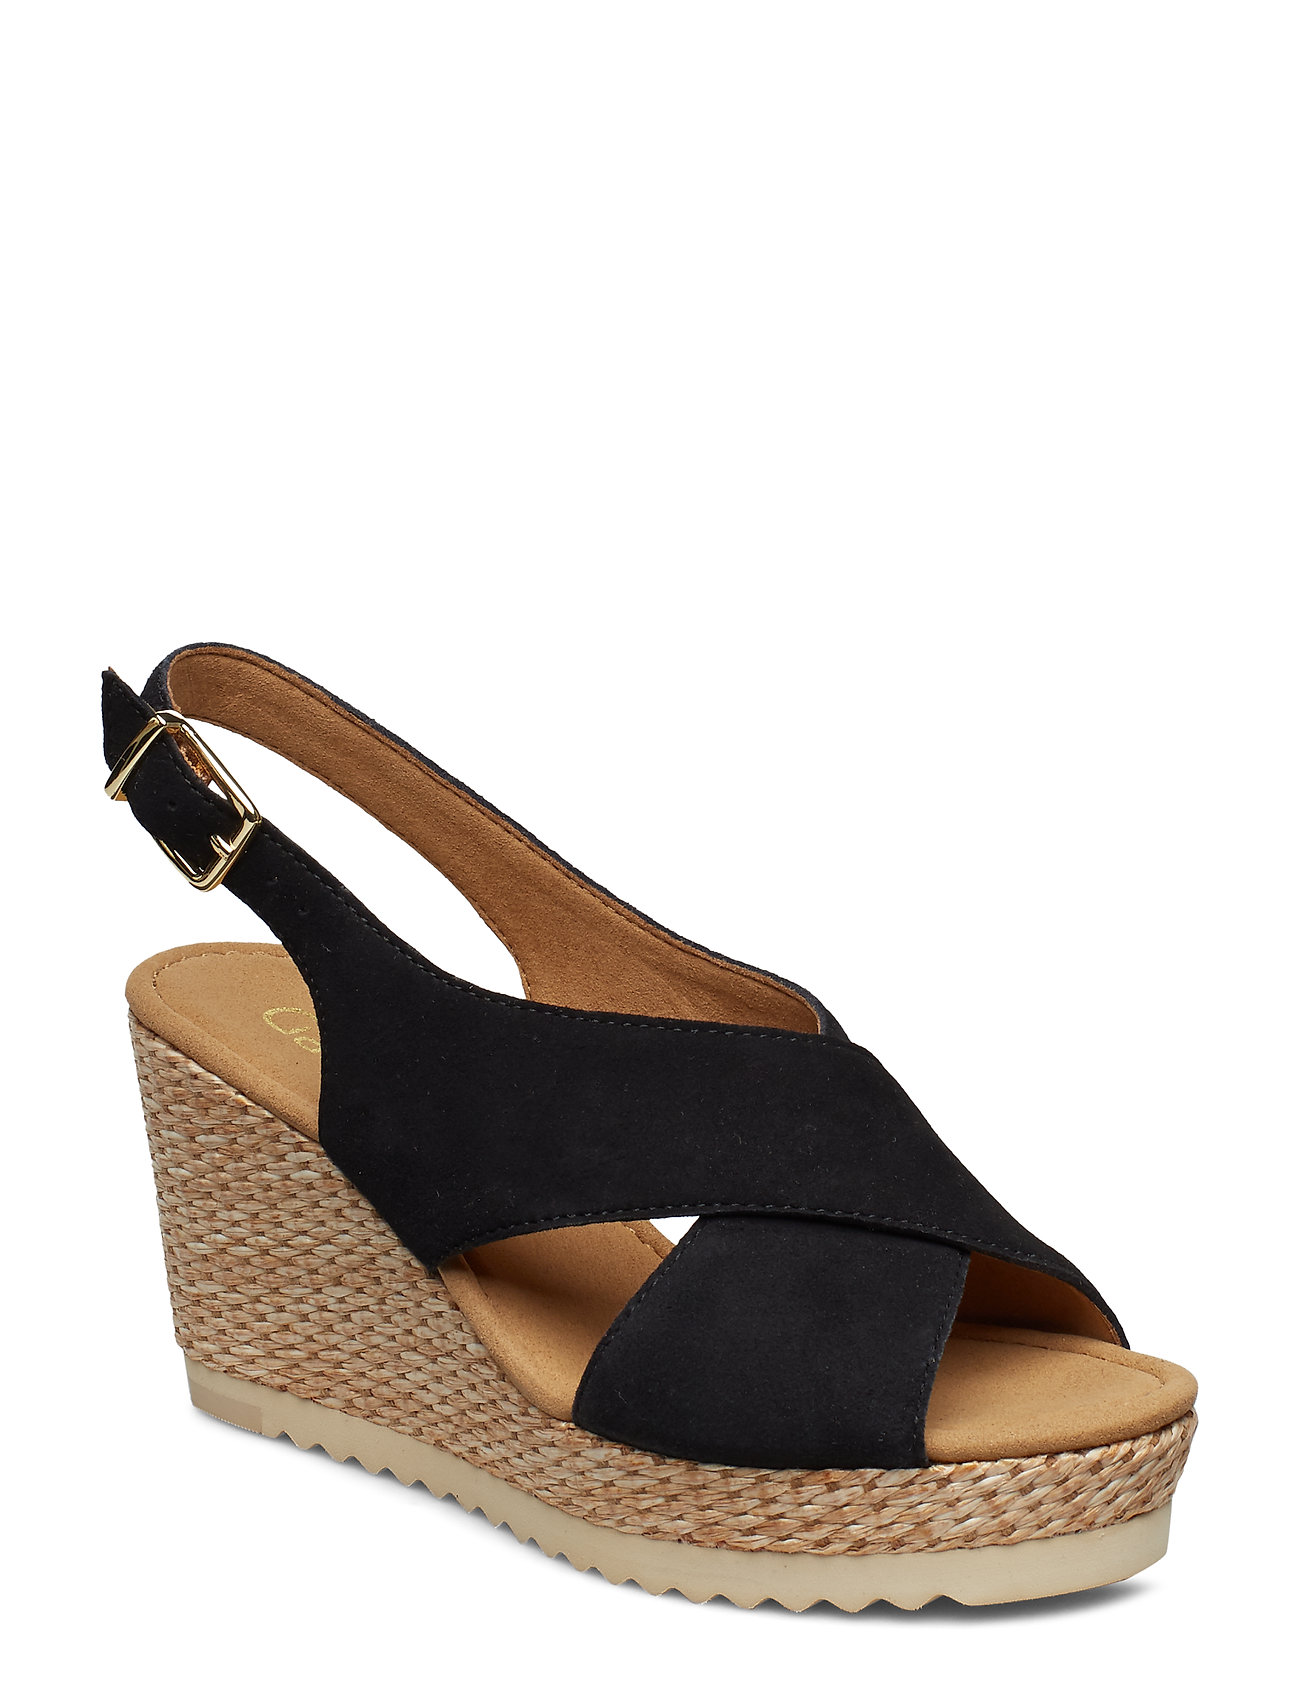 ef2f42d9e4f3 Sort Gabor Sling Sandals espadrillos med kilehæl for dame - Pashion.dk